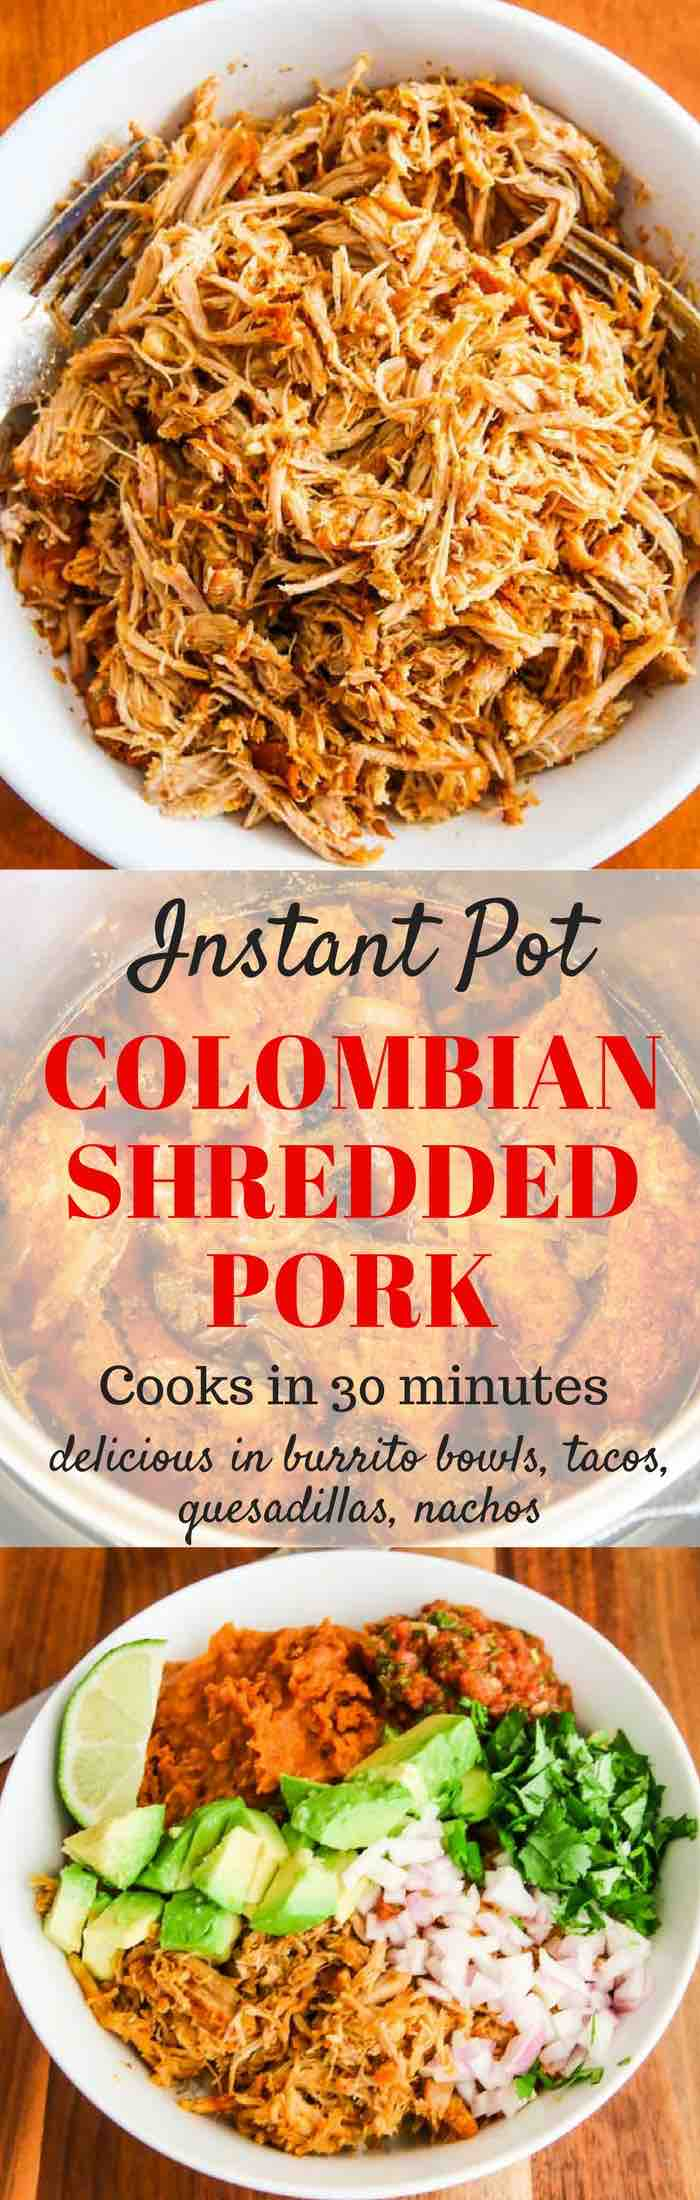 Instant Pot Colombian Shredded Pork - takes just 30 minutes to cook until tender. Delicious in burrito bowls, tacos, empanadas, arepas or nachos